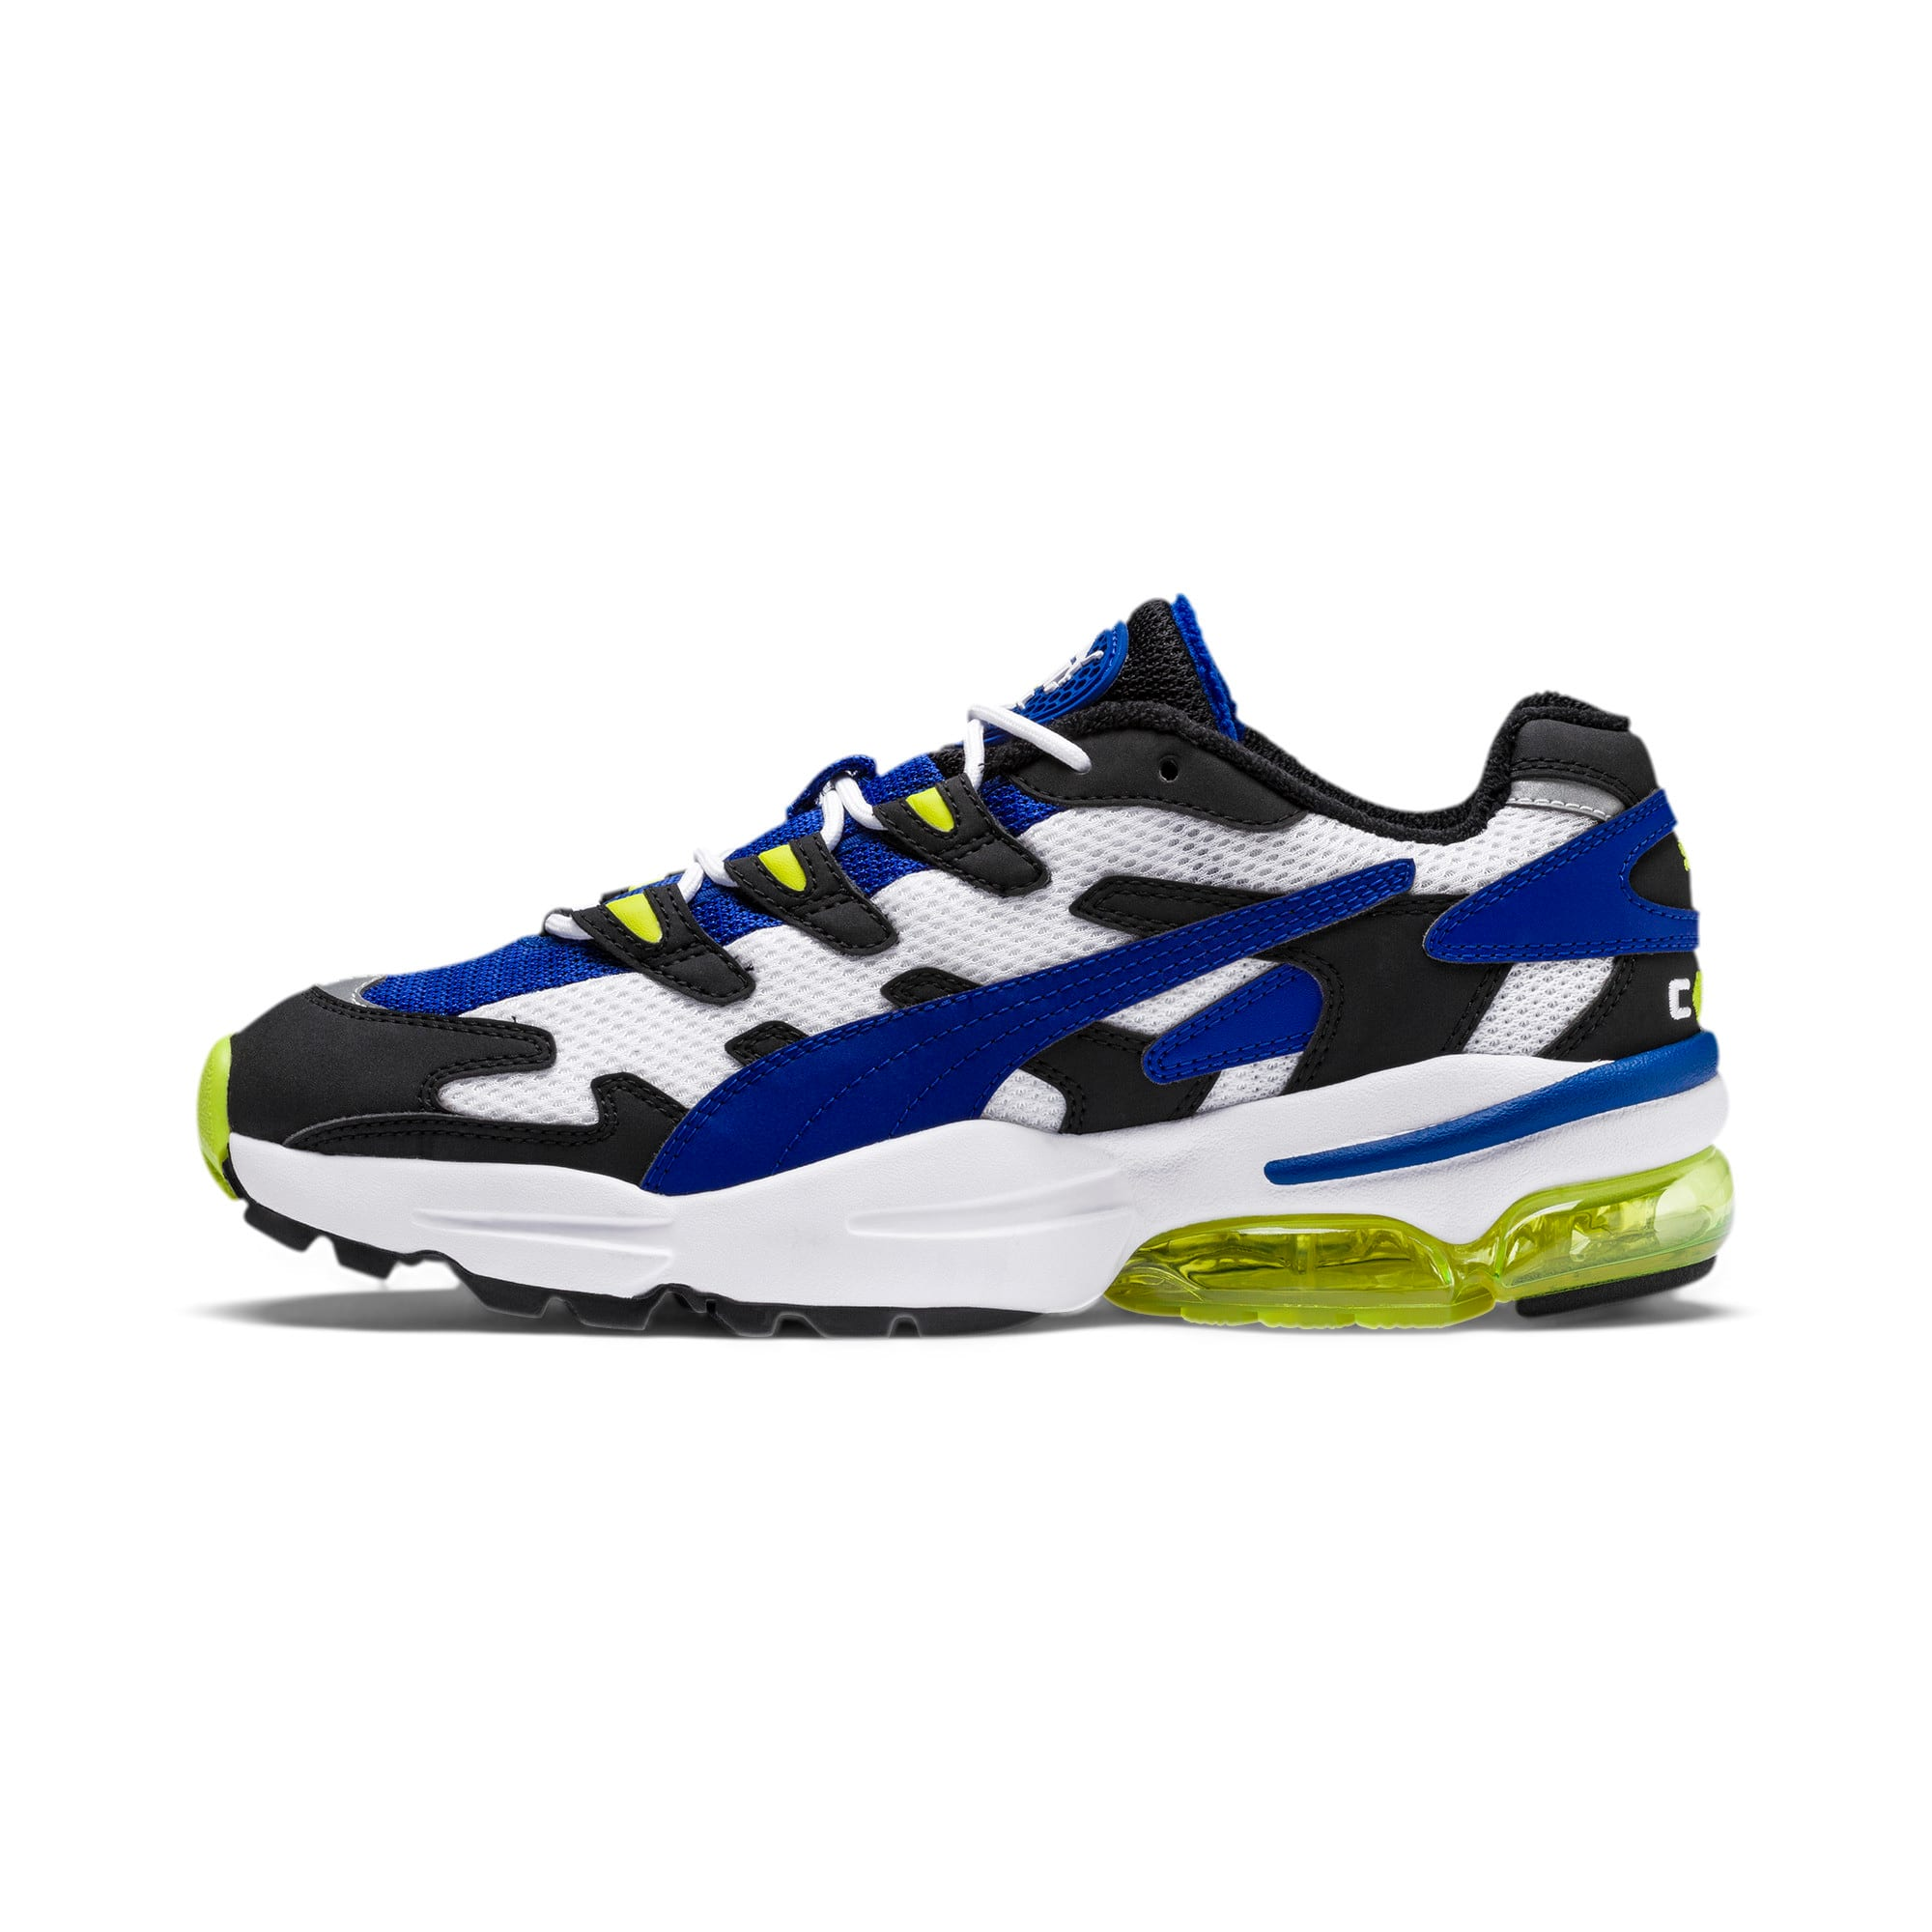 Thumbnail 1 of CELL Alien OG Trainers, Puma Black-Surf The Web, medium-IND